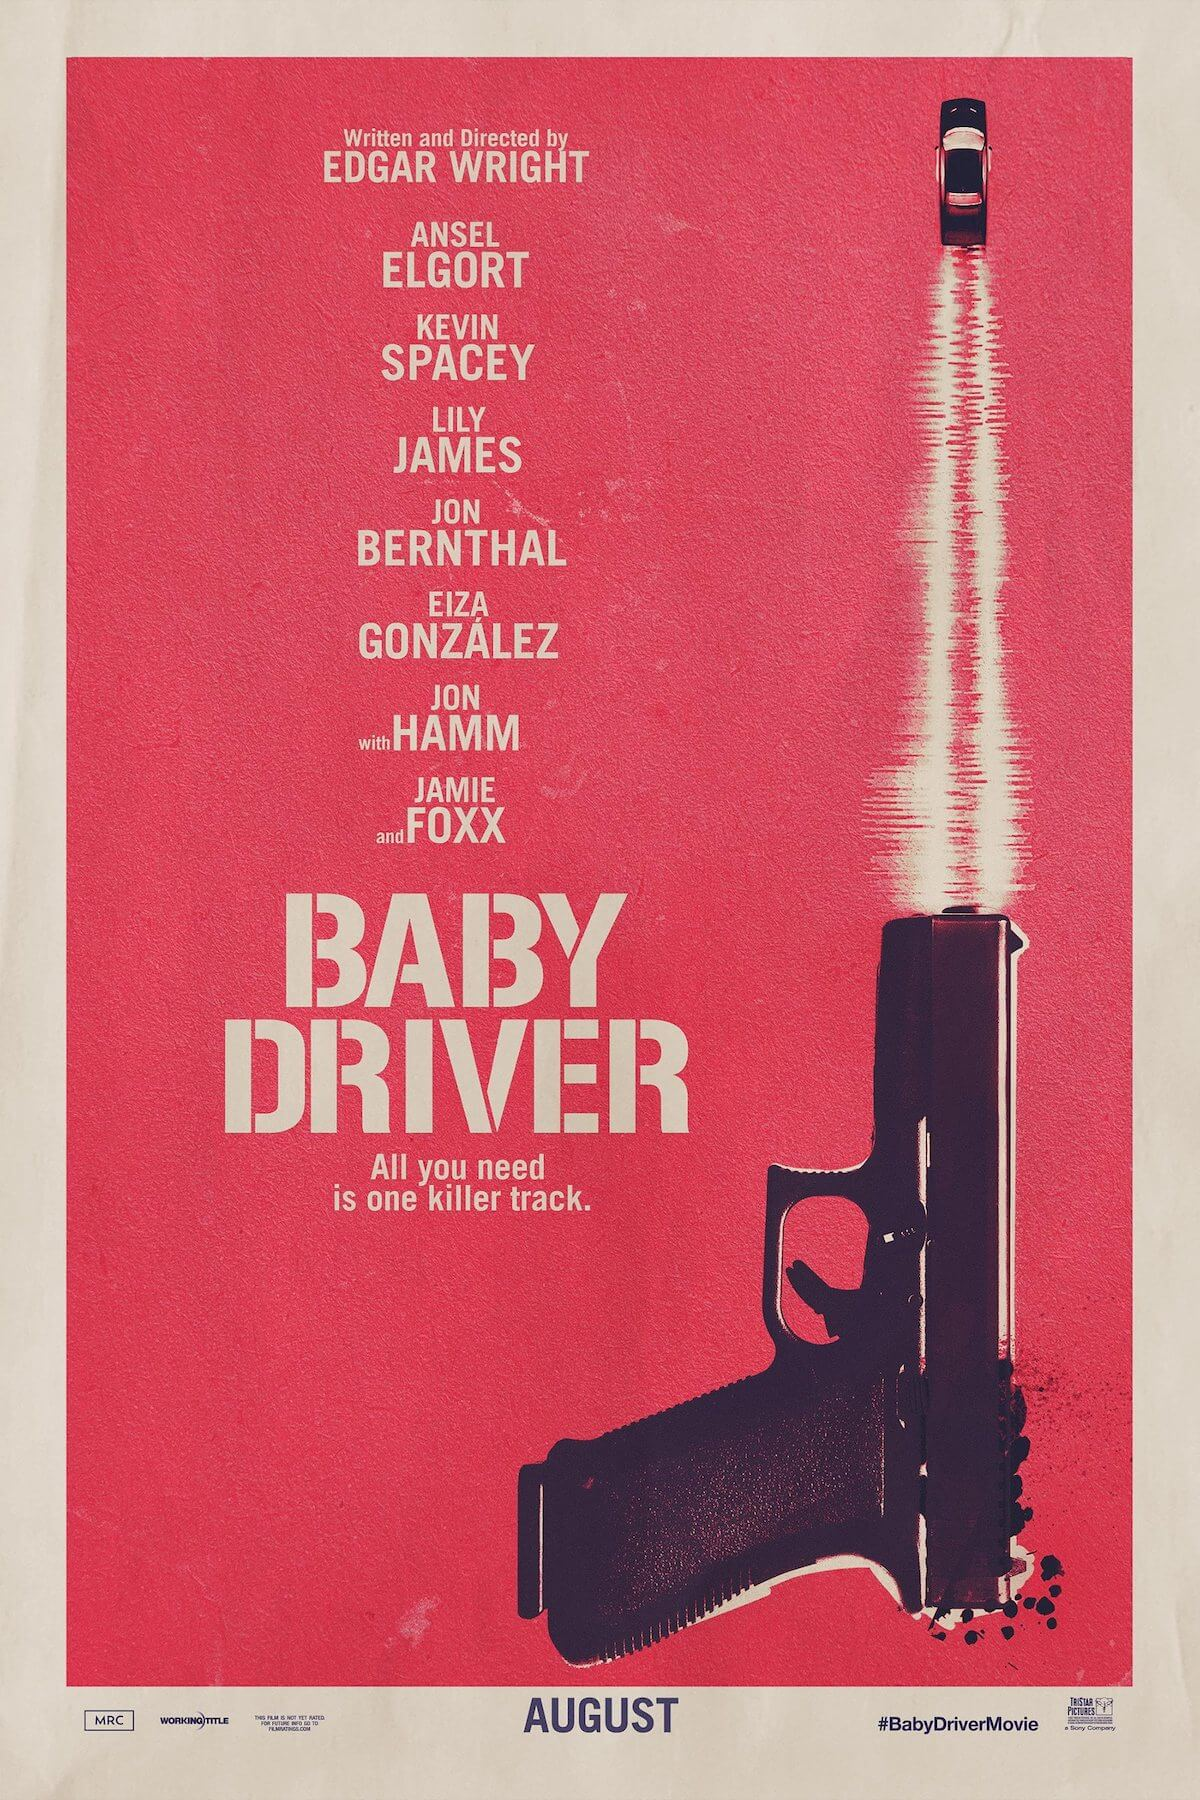 Baby driver teaser poster